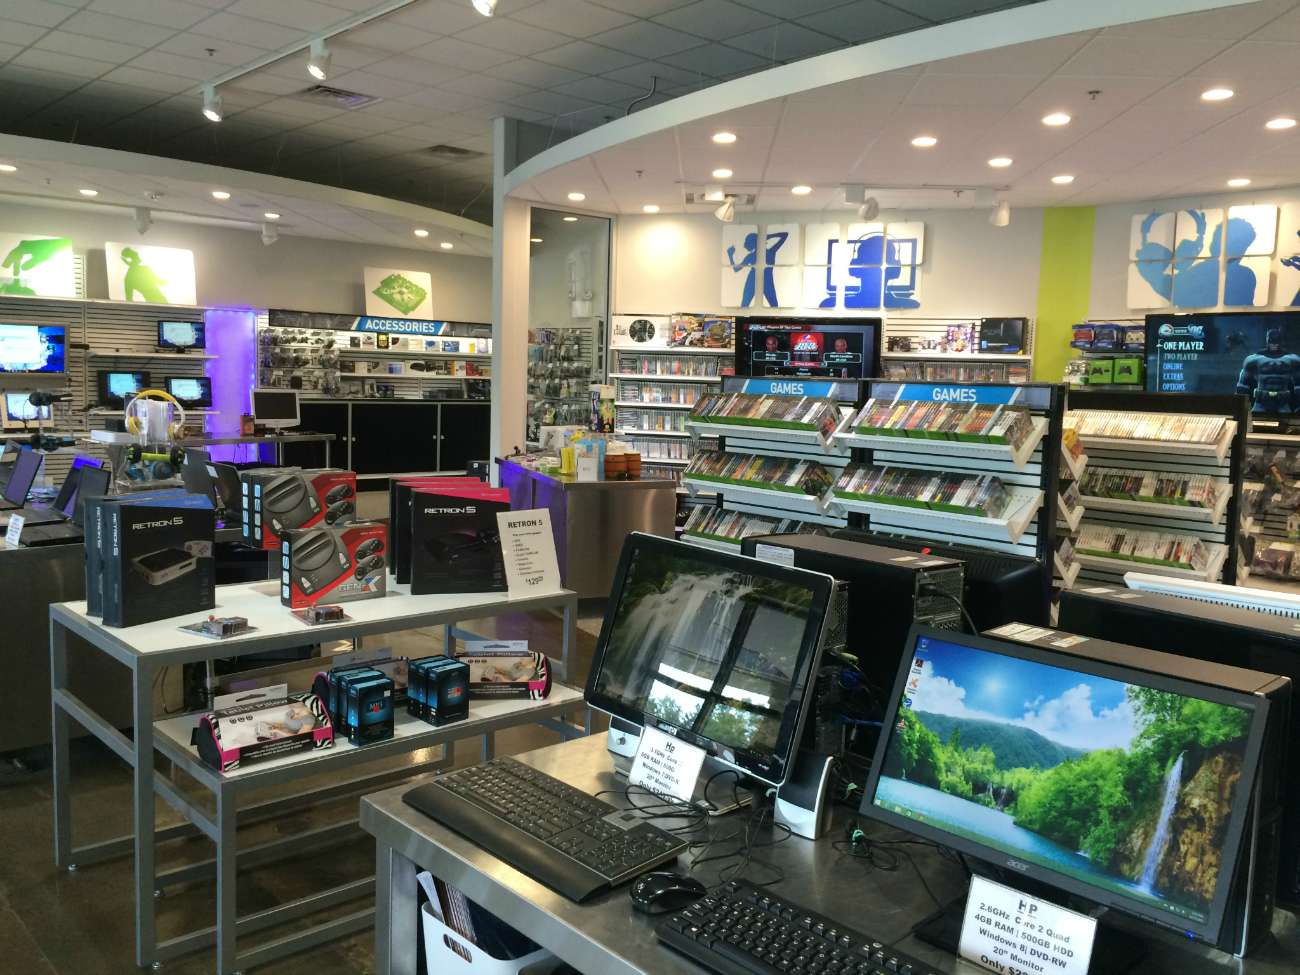 Are you aware Goodwill runs an electronics store called The Grid?